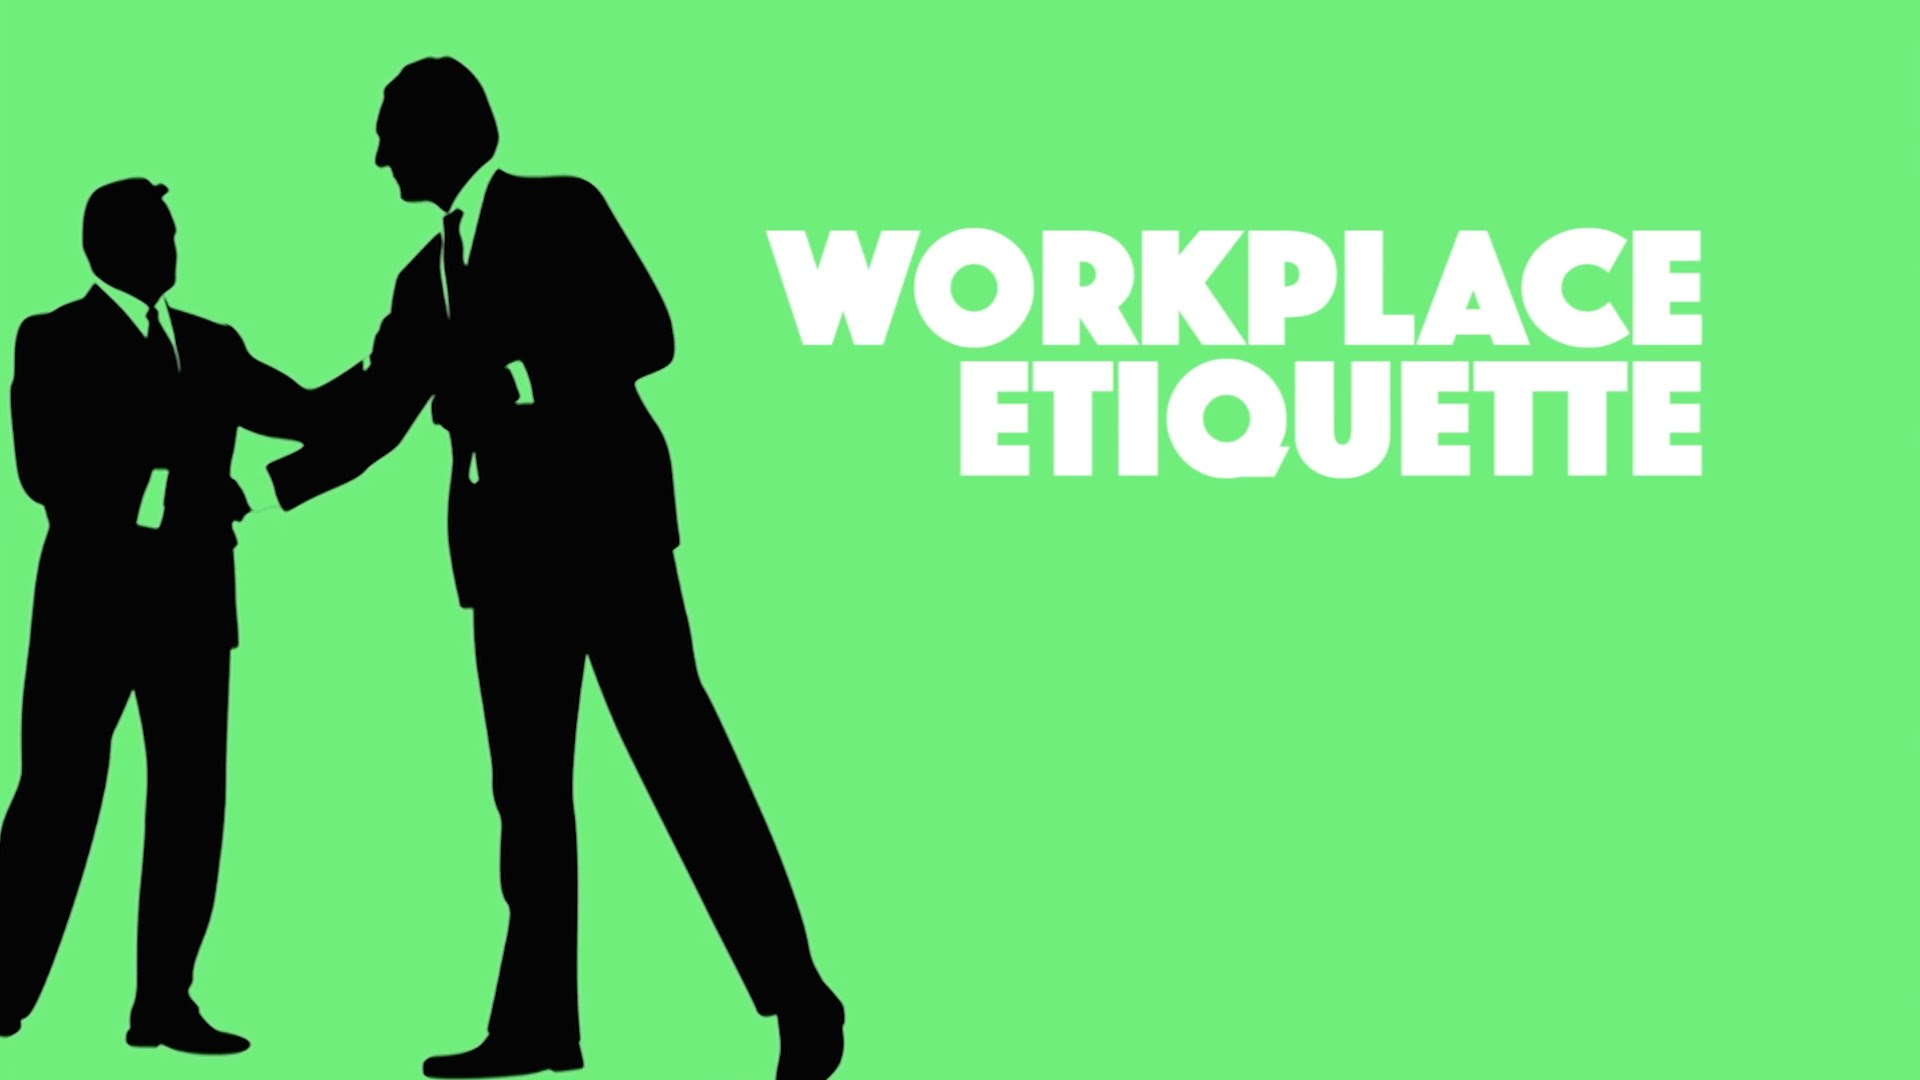 workplace etiquette essay Workplace etiquette: is our system broken workplace etiquette covers a wide range of topics in today's business environment business leaders are expected to fully understand office and business etiquette, email etiquette, international etiquette, etiquette utilized in dining, etiquette utilized in business meeting and etiquette used with.